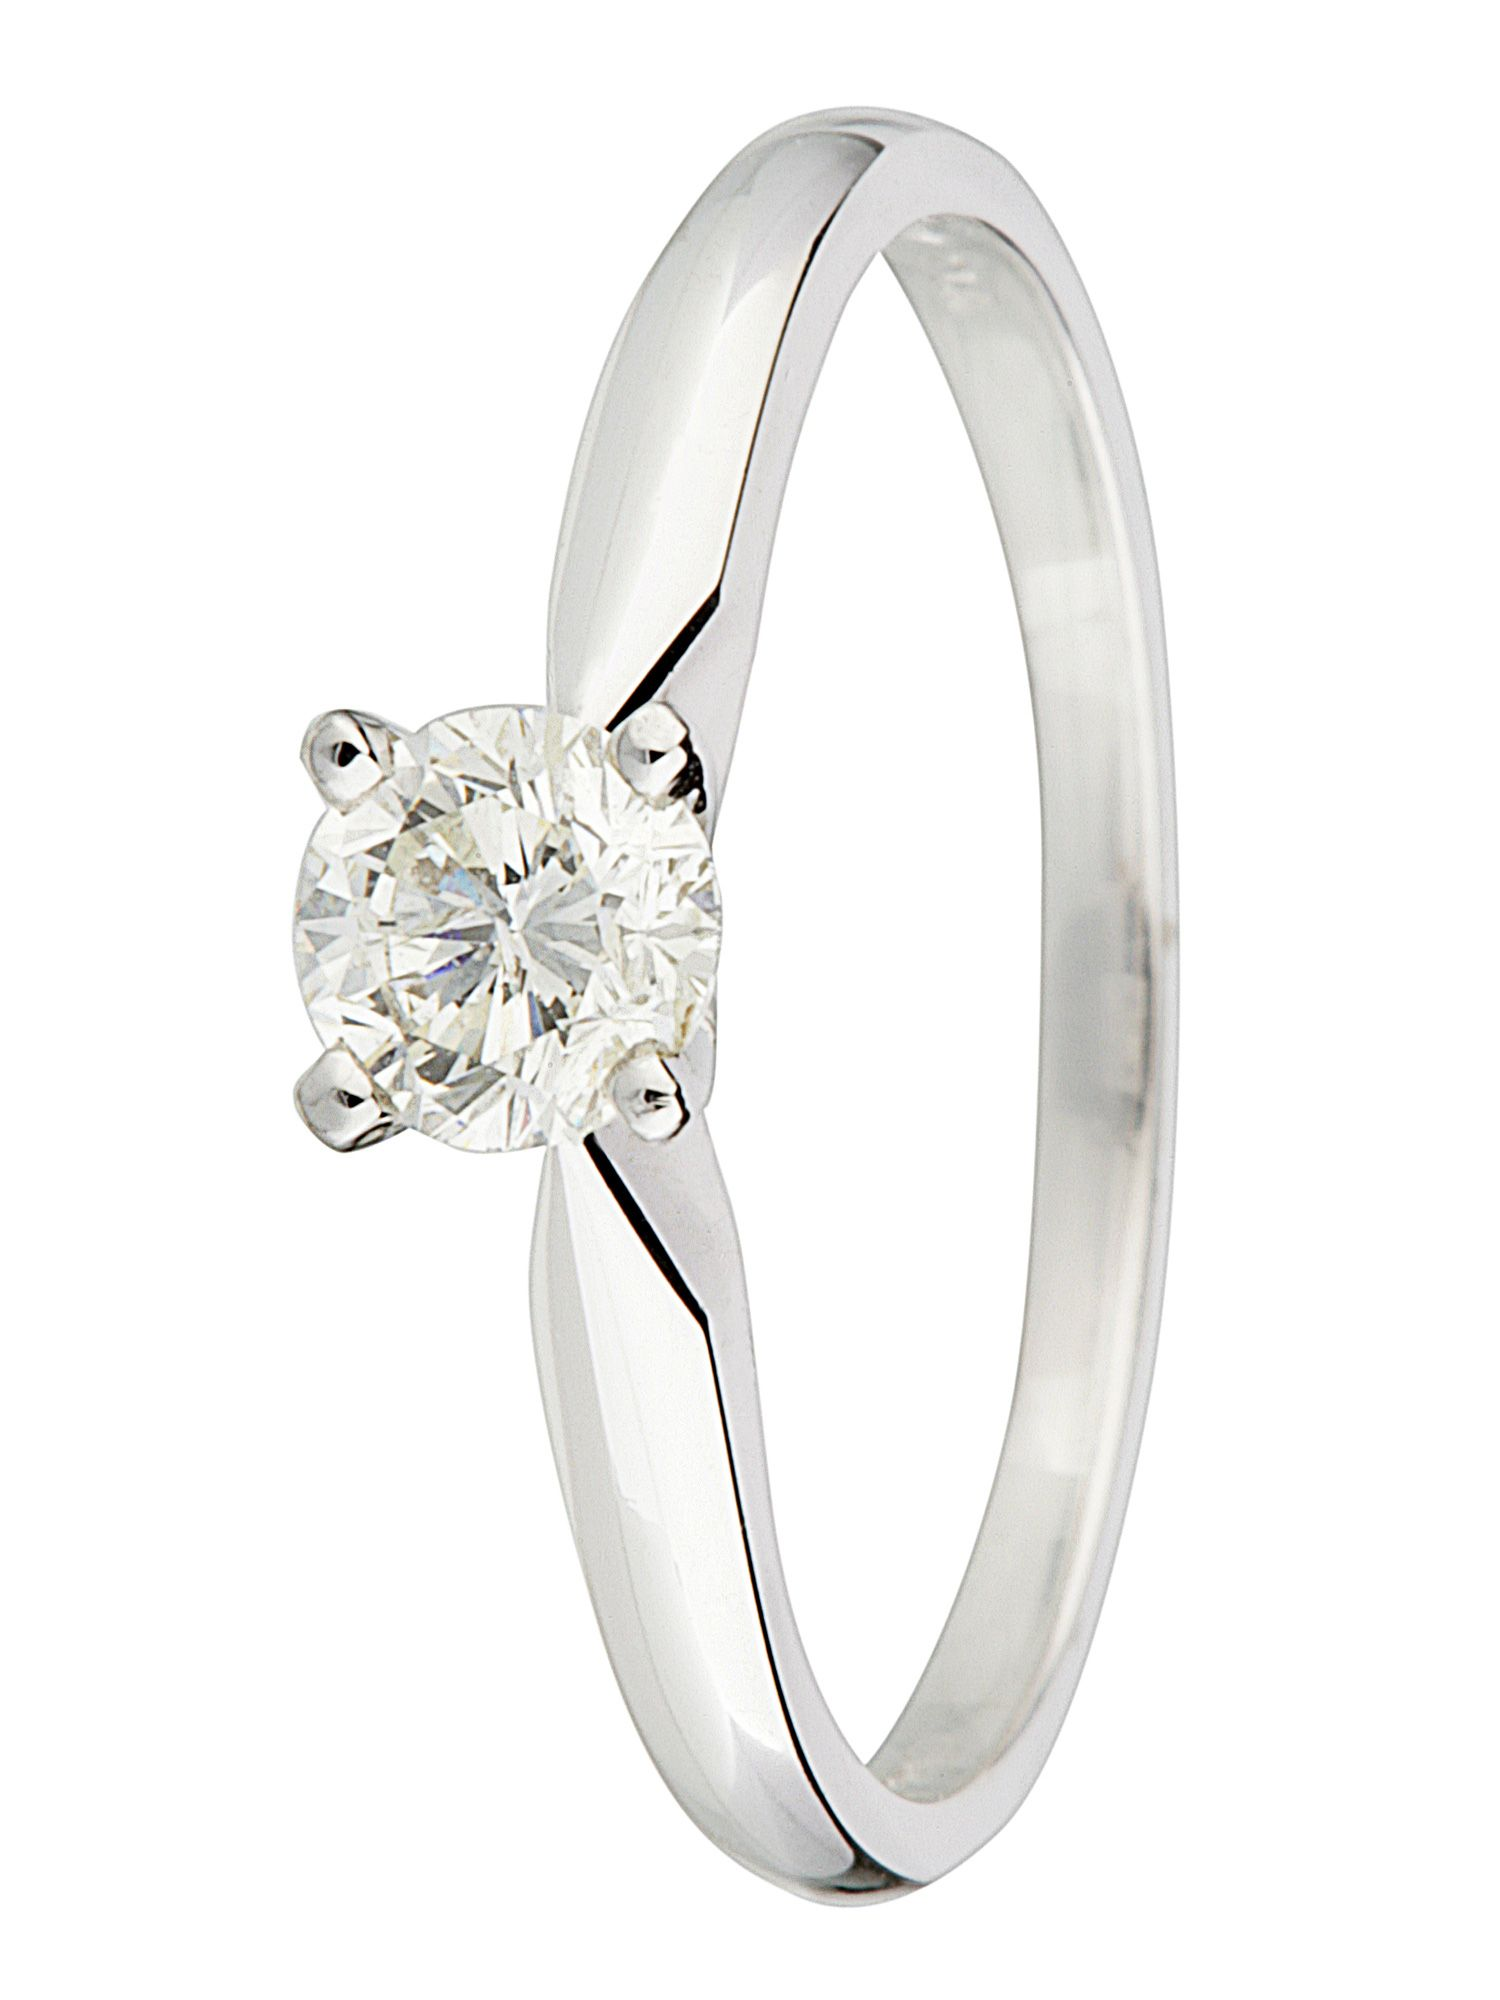 Goldsmiths 18ct gold 0.33ct brilliant cut diamond ring